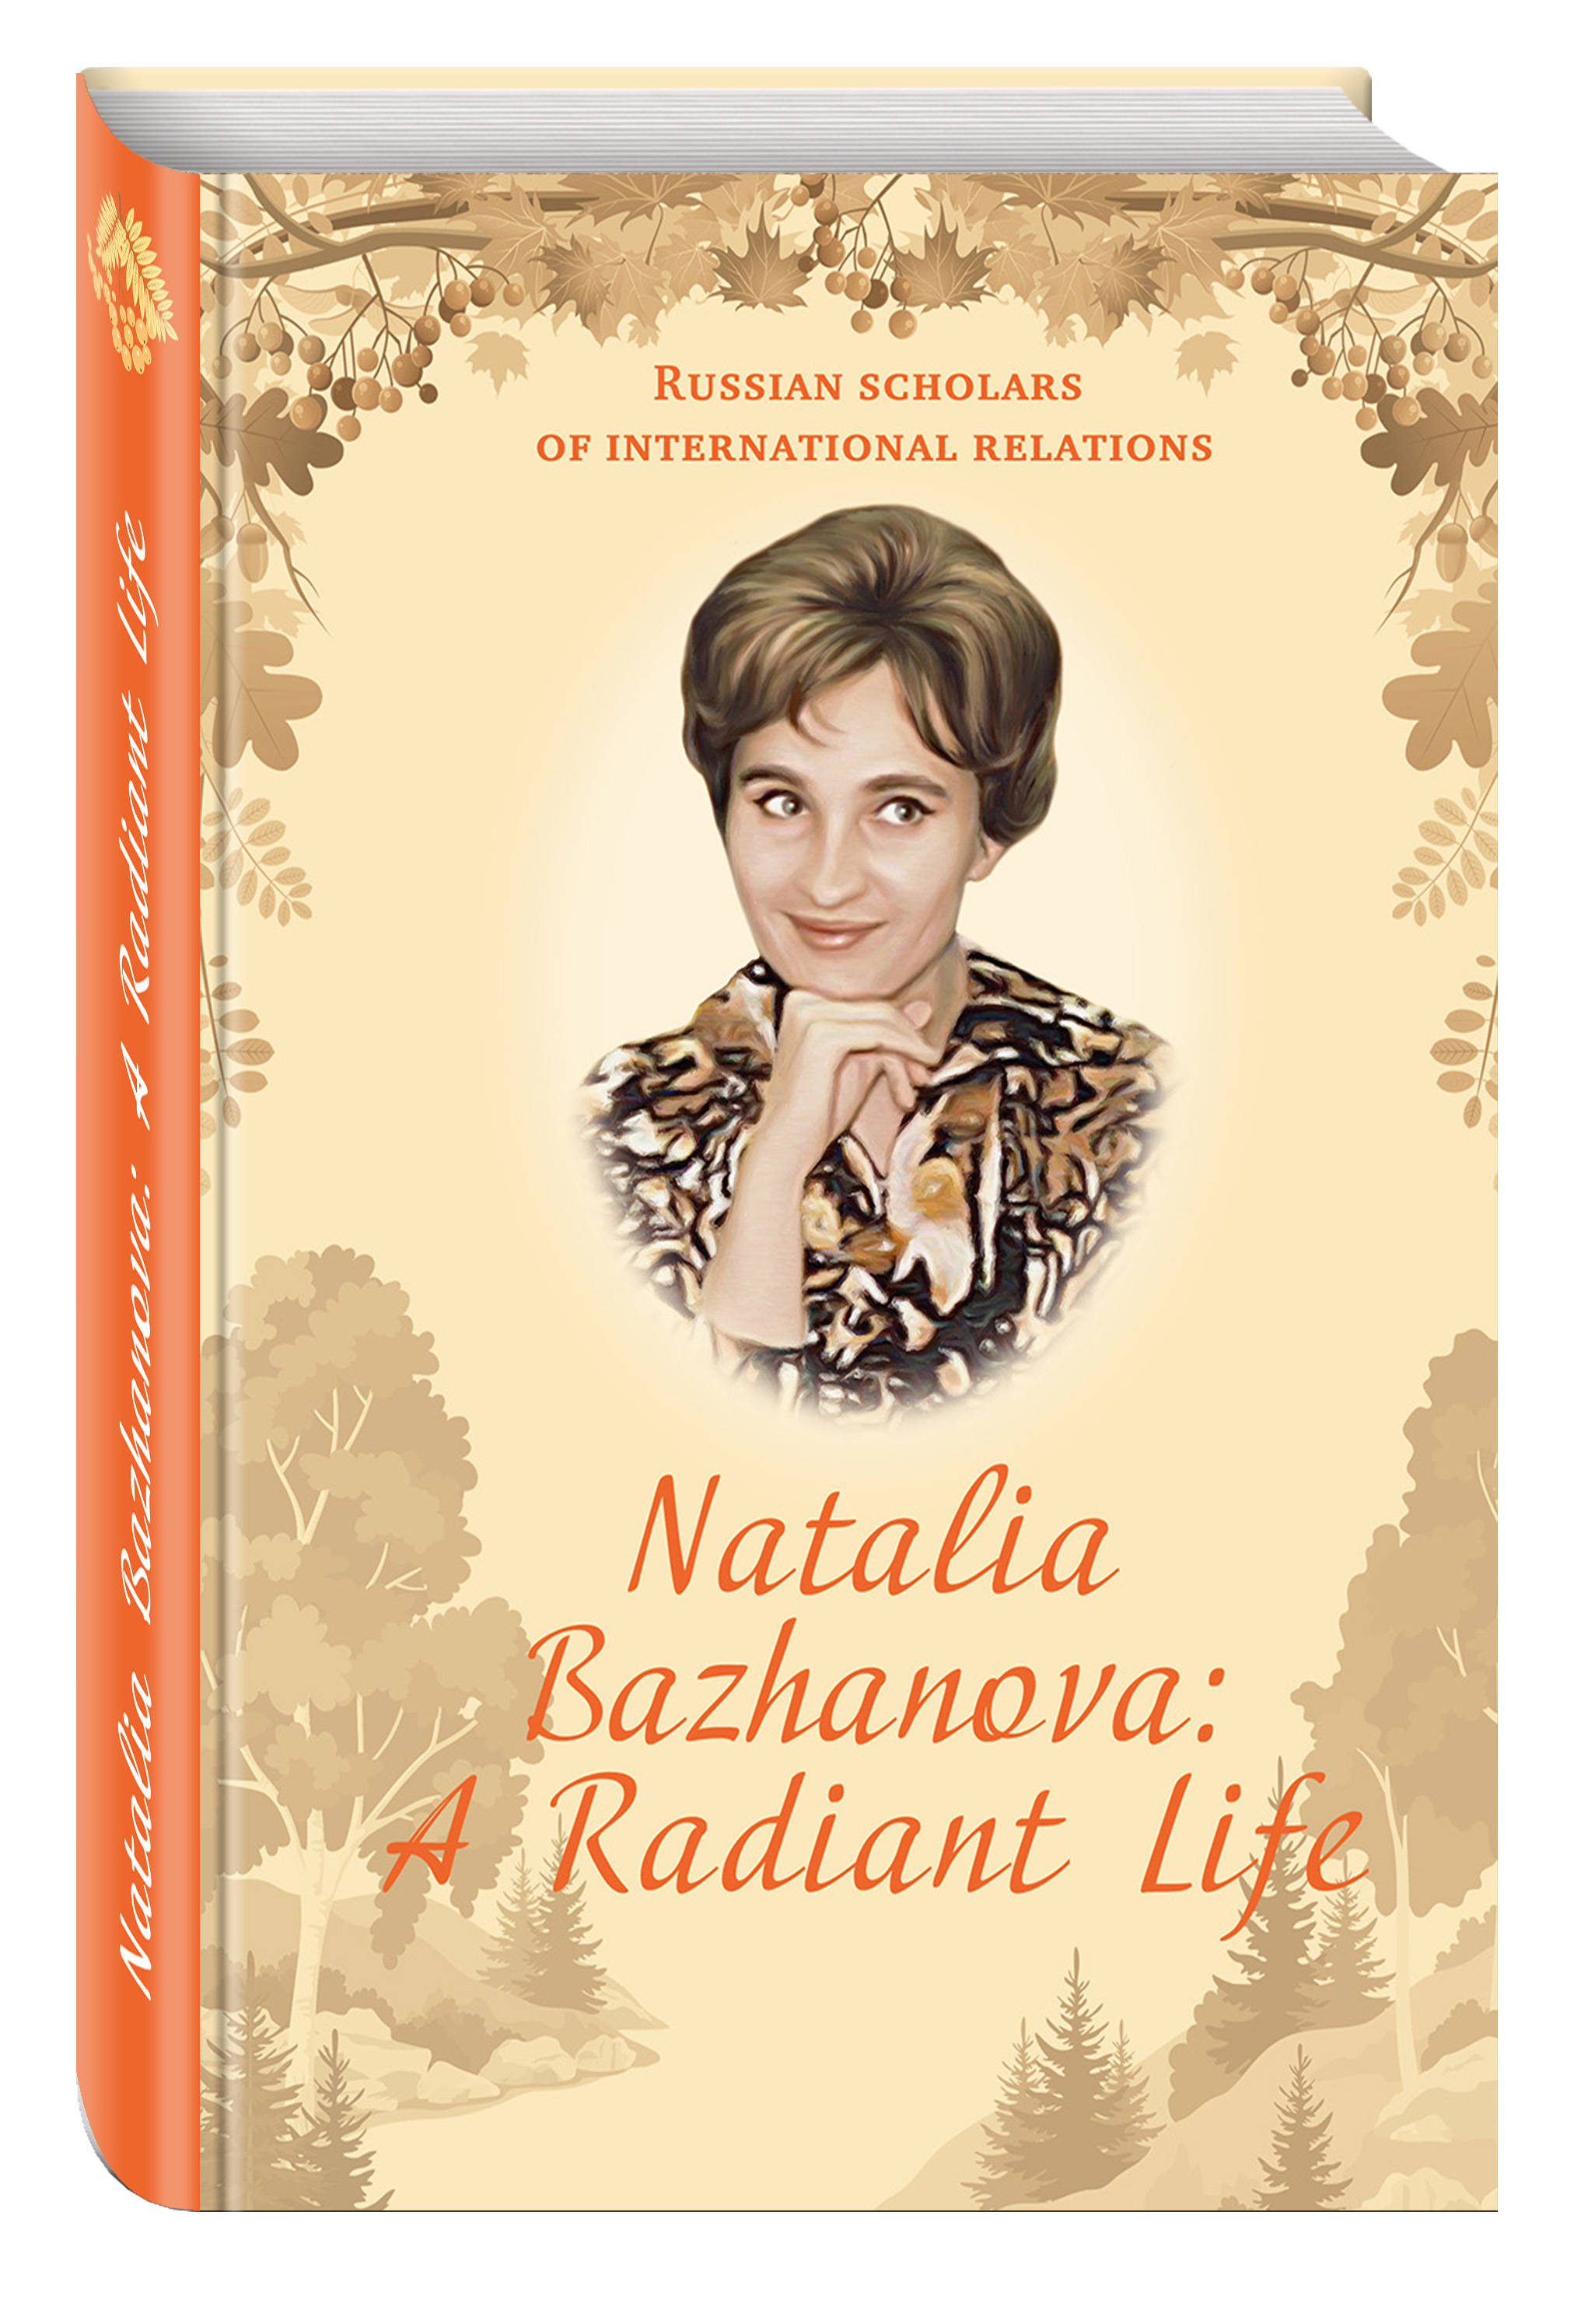 Natalia Bazhanova: A Radiant Life femininity the politics of the personal